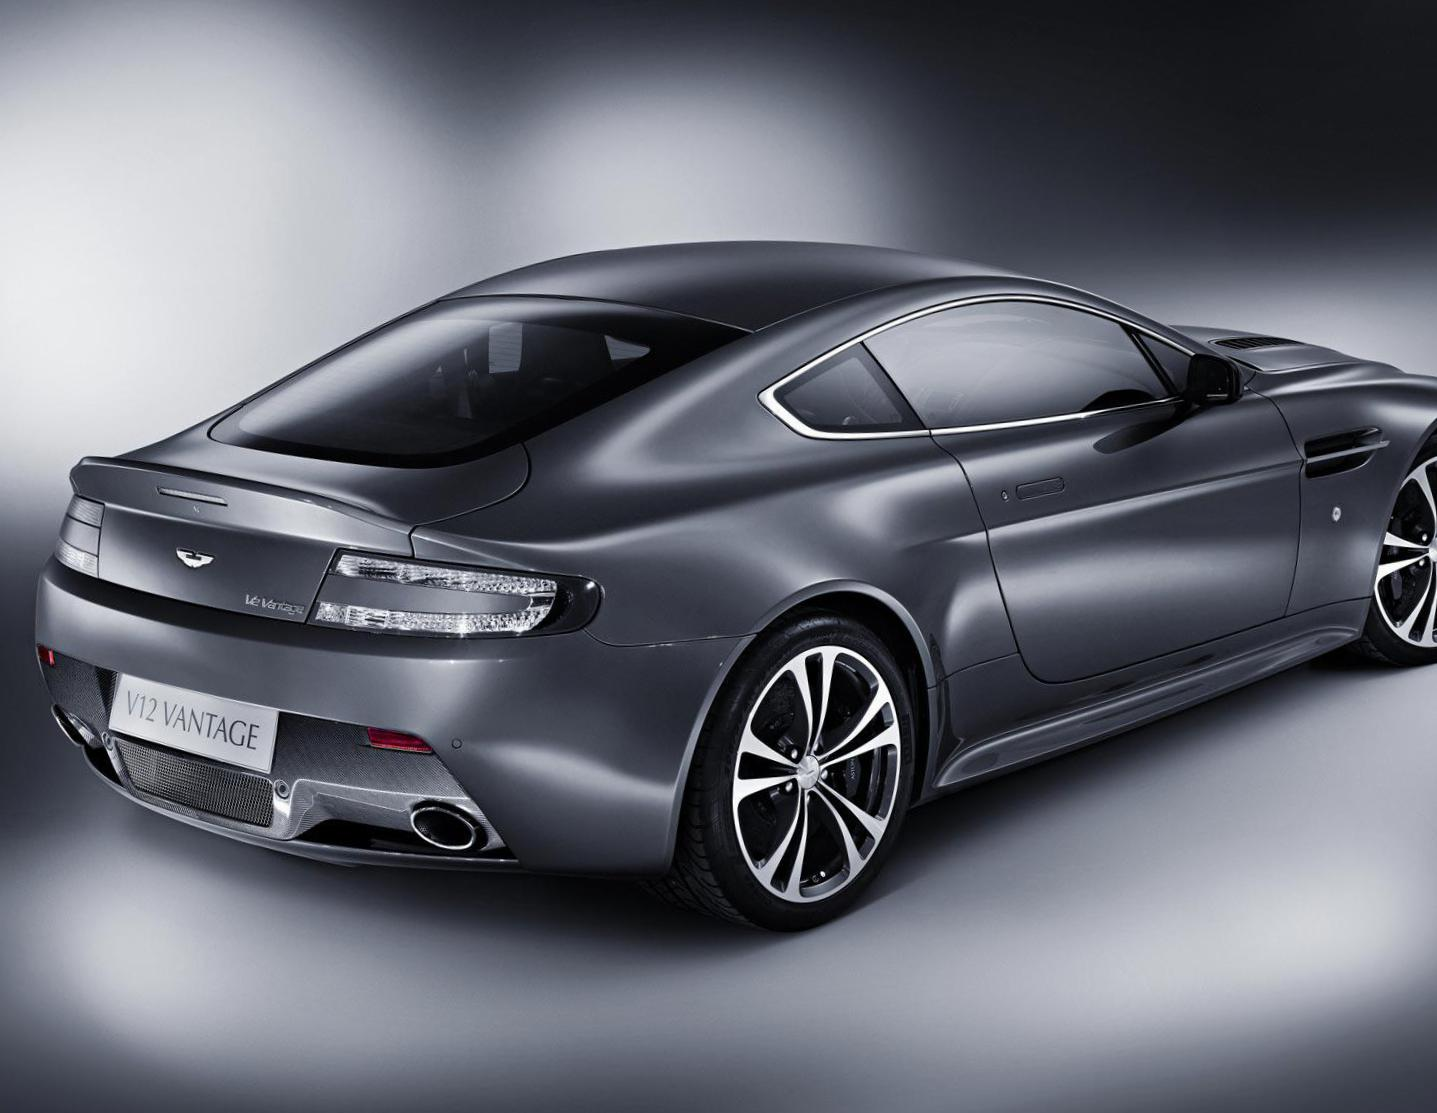 Aston Martin Vantage review 2009